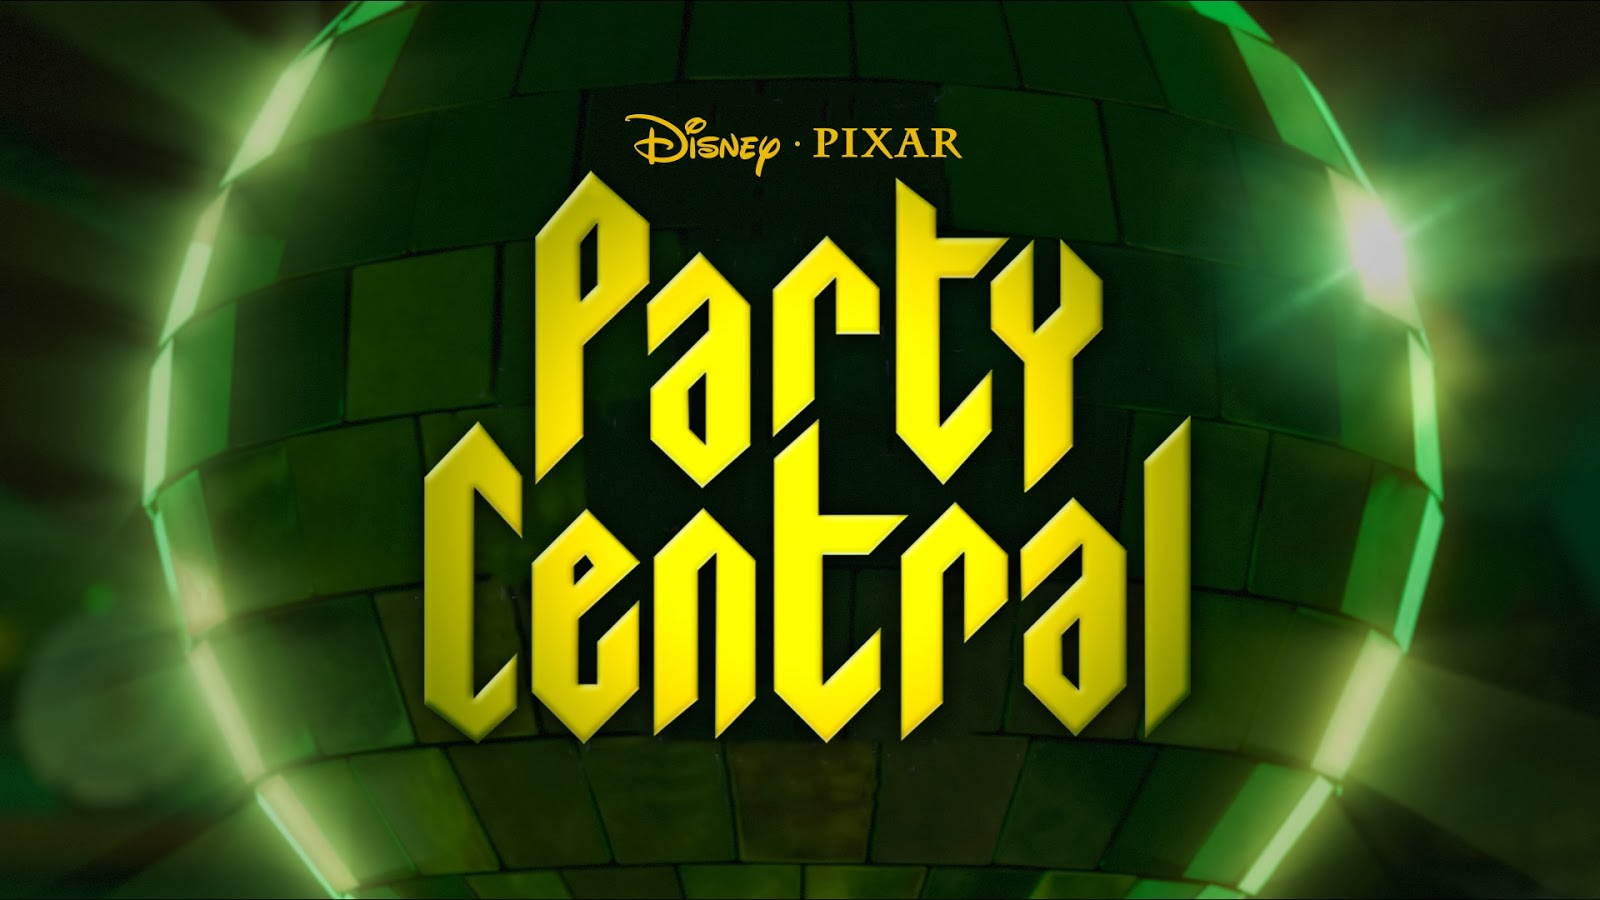 mike sulley are stealing the party in new party central clip